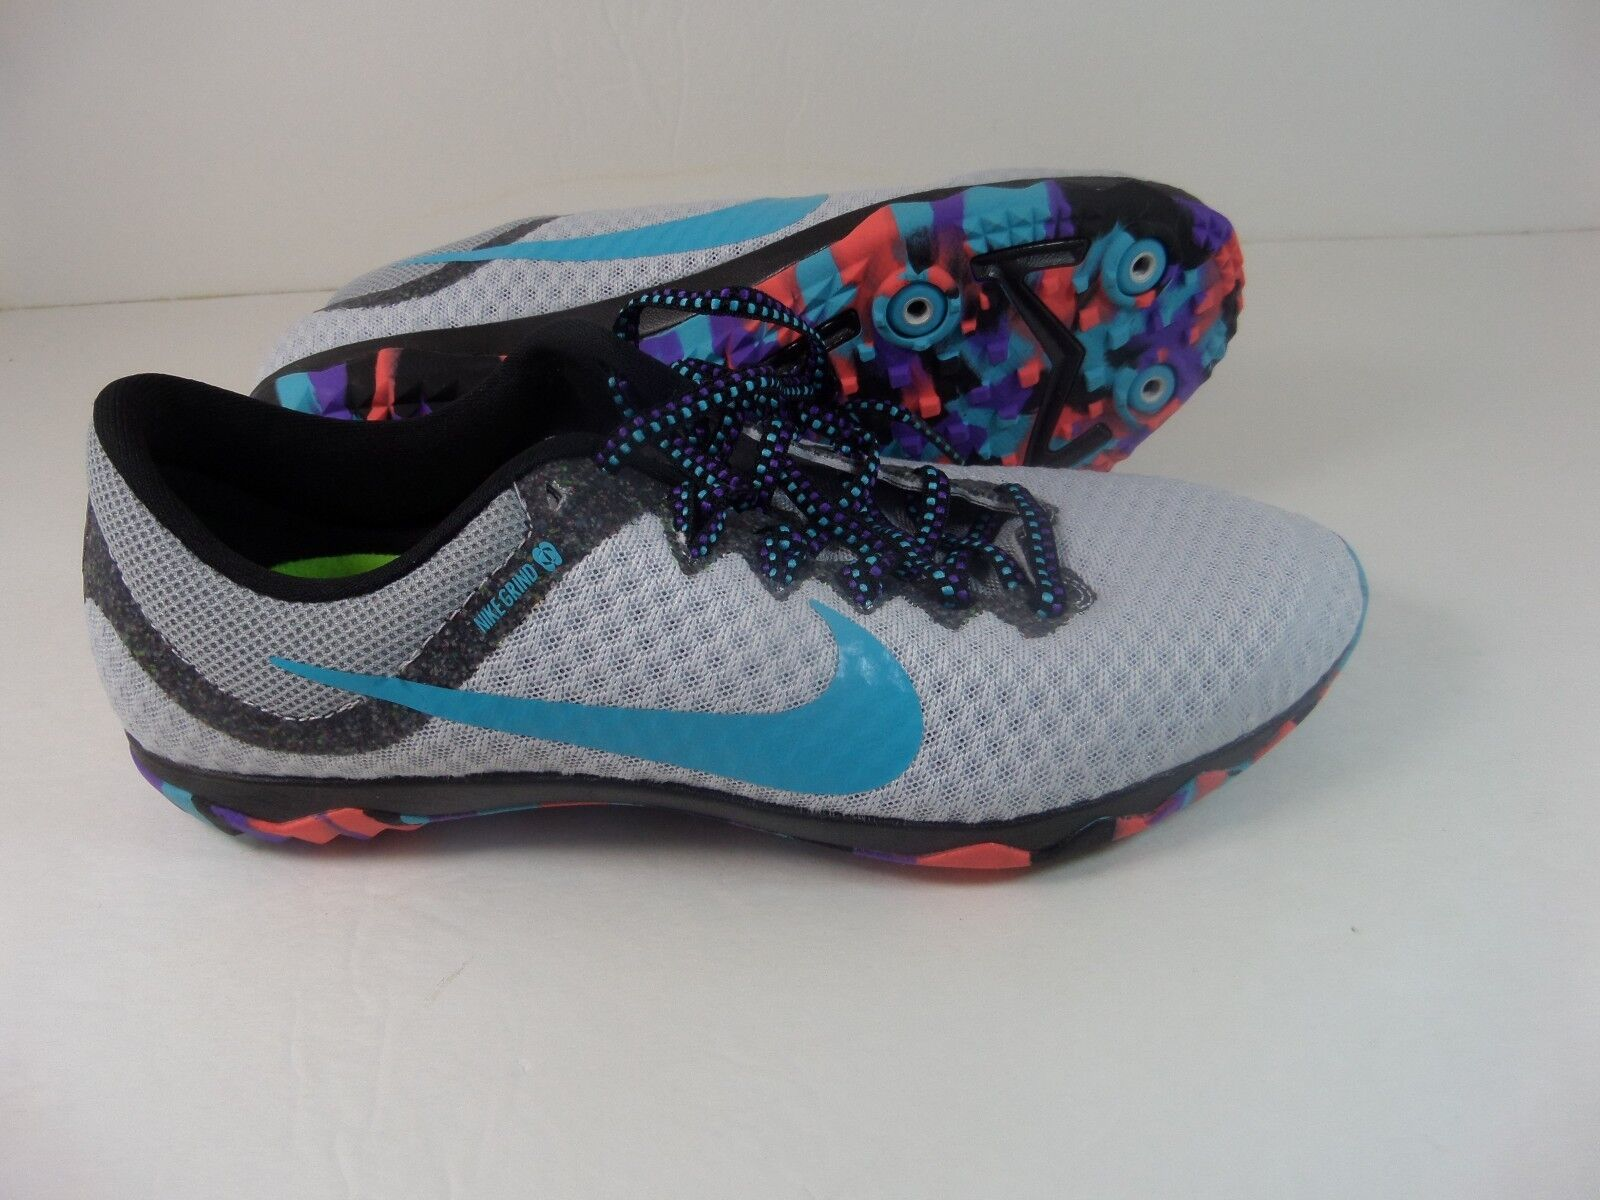 Nike Rival XC Grind Racing Spike Shoes Gray orange women Track Field Shoes New Seasonal price cuts, discount benefits